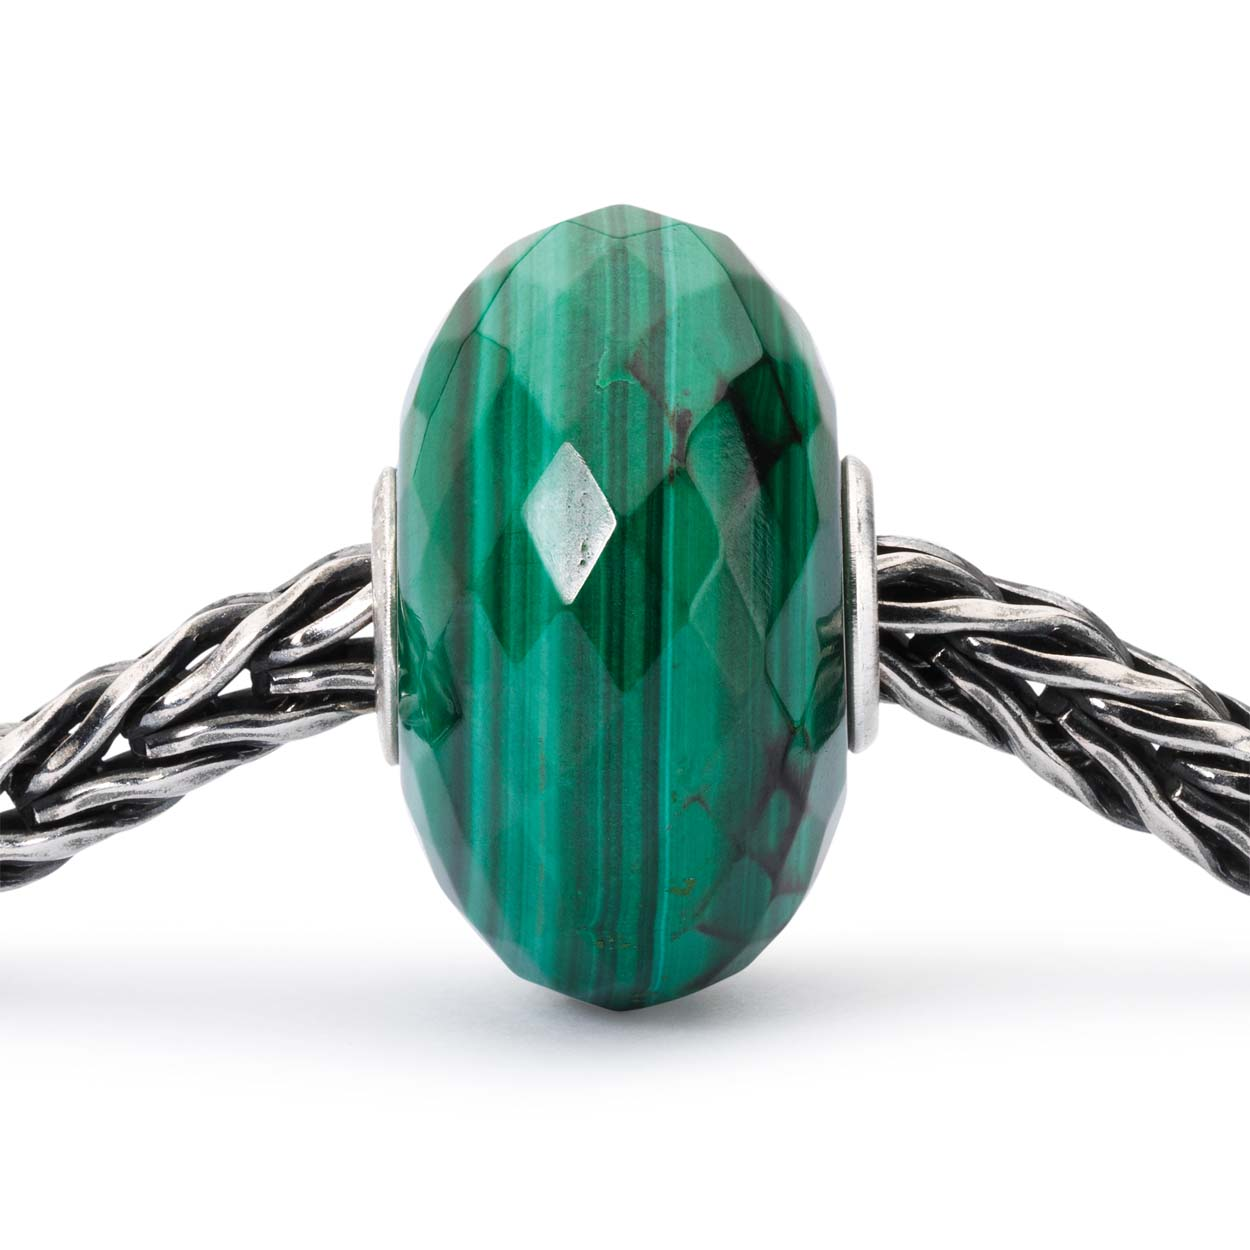 TSTBE-20023 Malachite chain